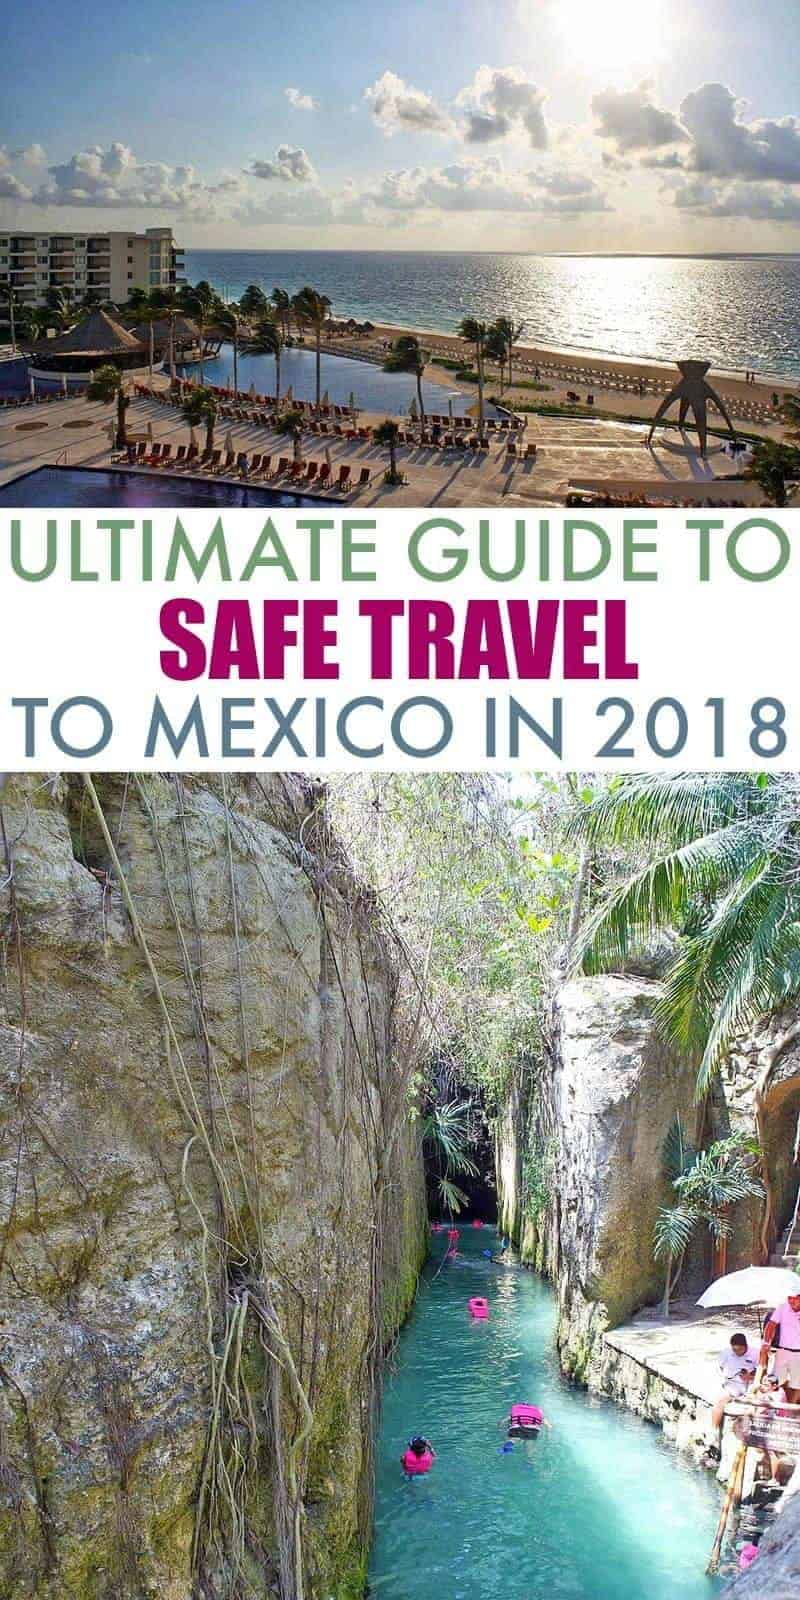 collage of two scenic Mexico photos